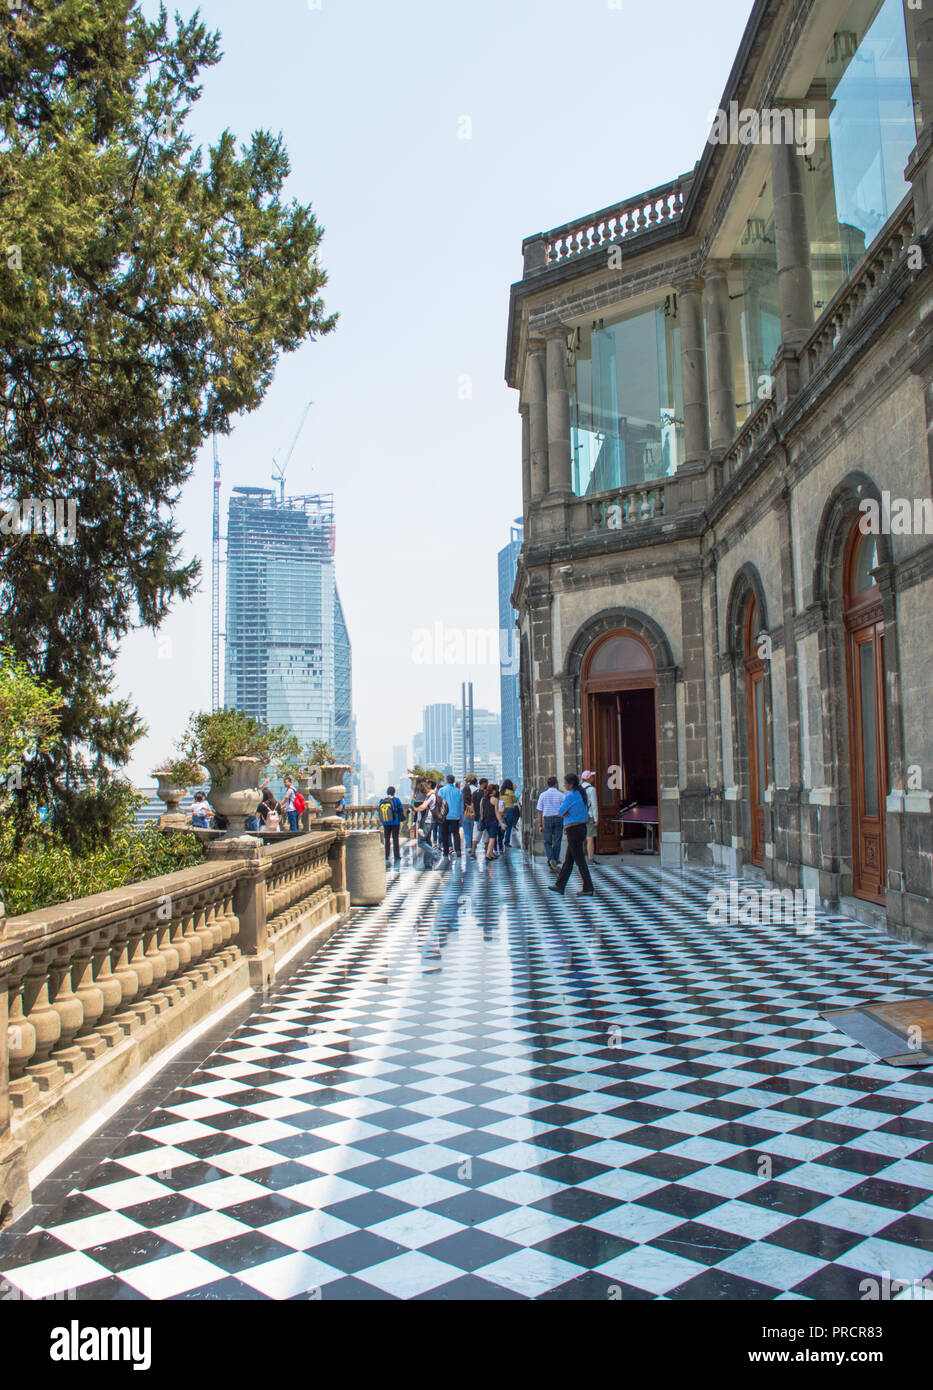 Hallway of the Chapultepec Castle, tall building in the back. Mexico City. - Stock Image